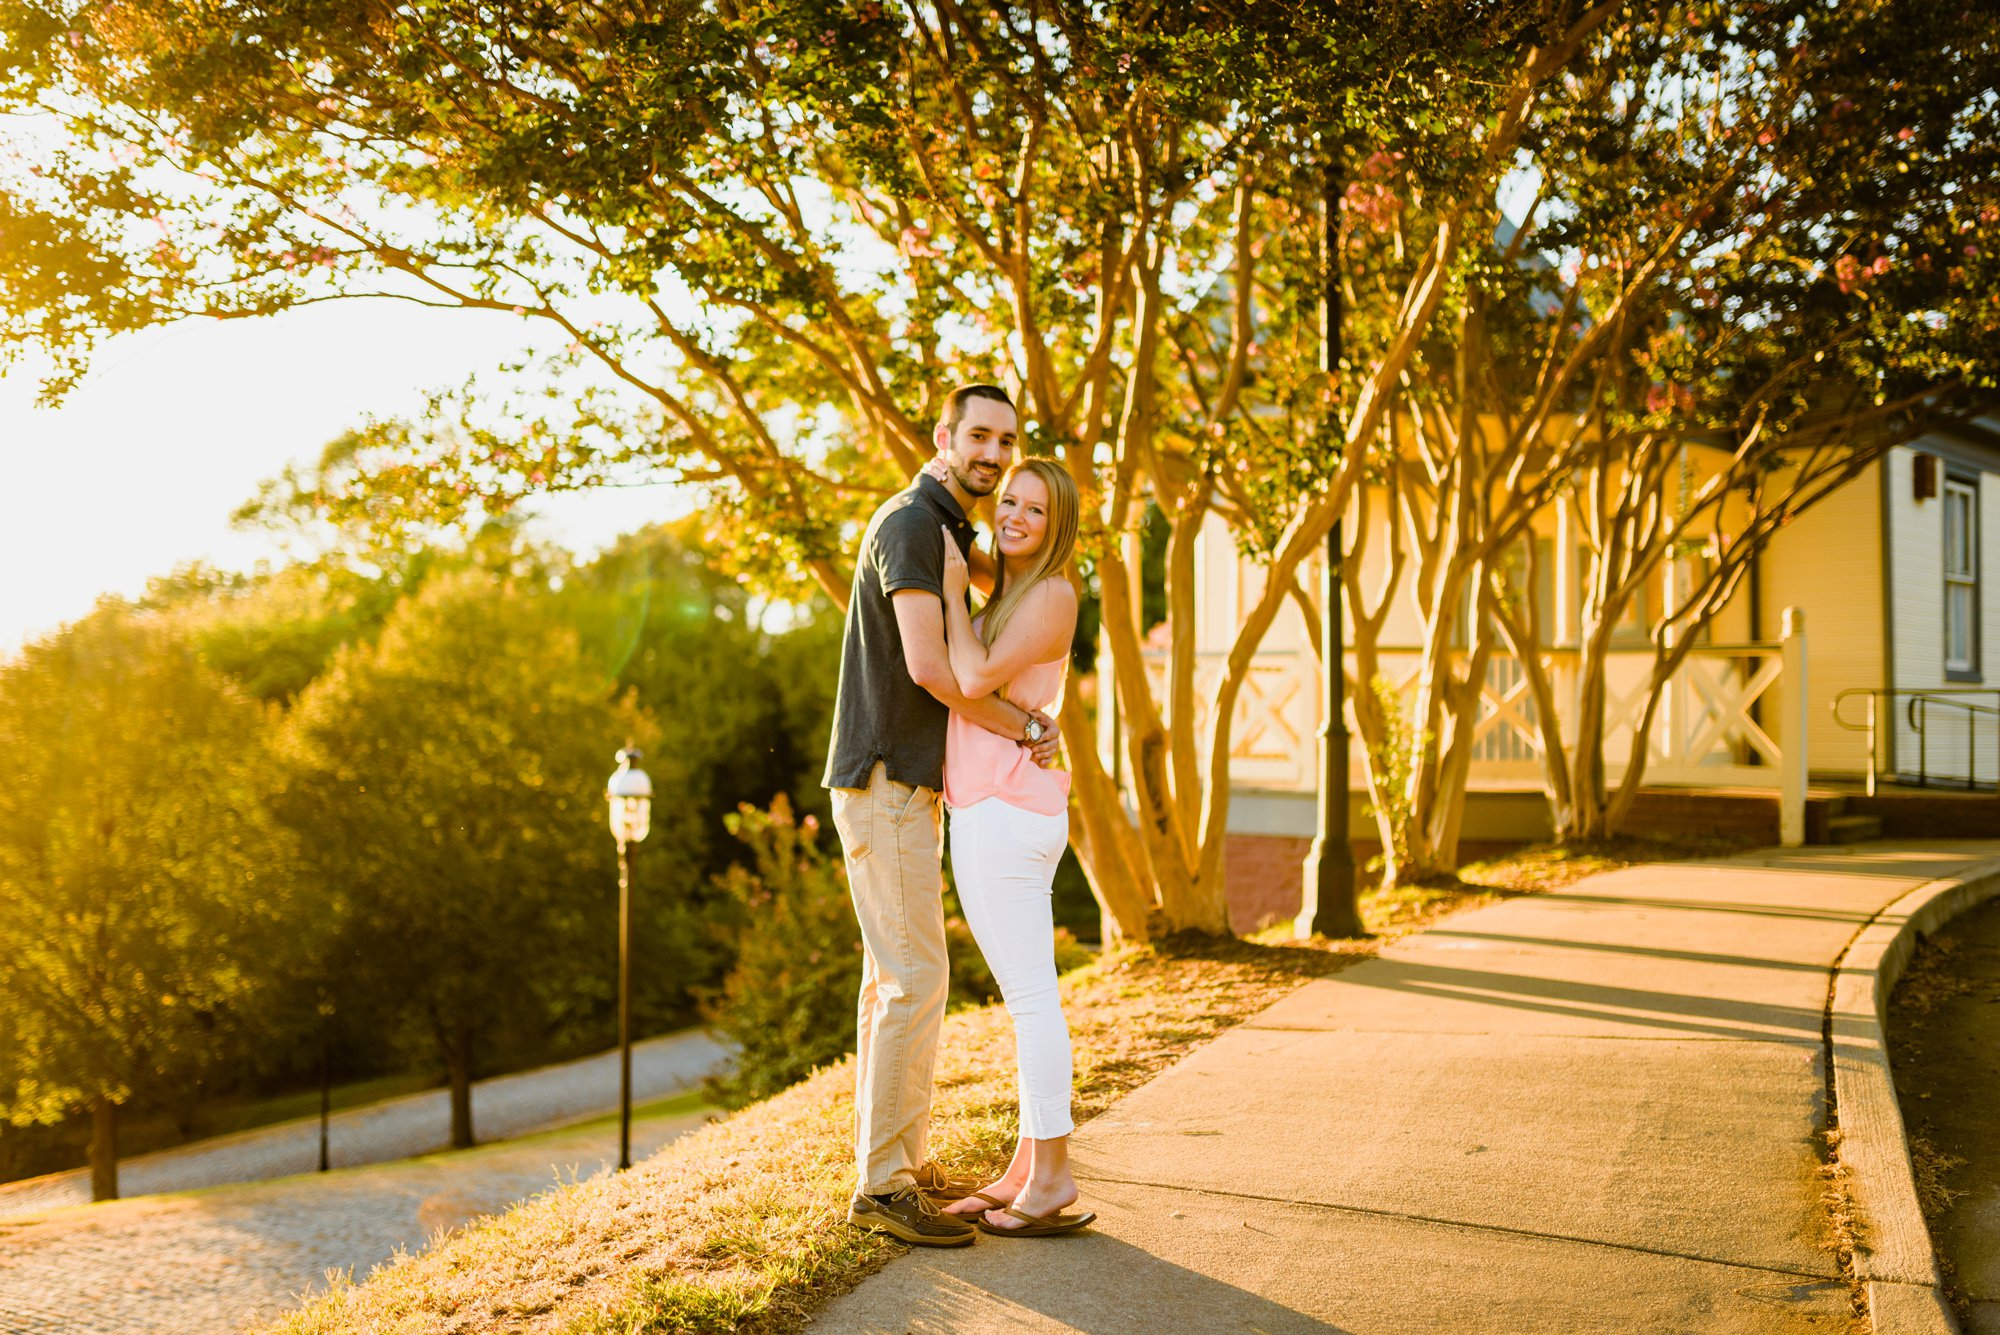 engagement-photography-88-love-stories-4.jpg